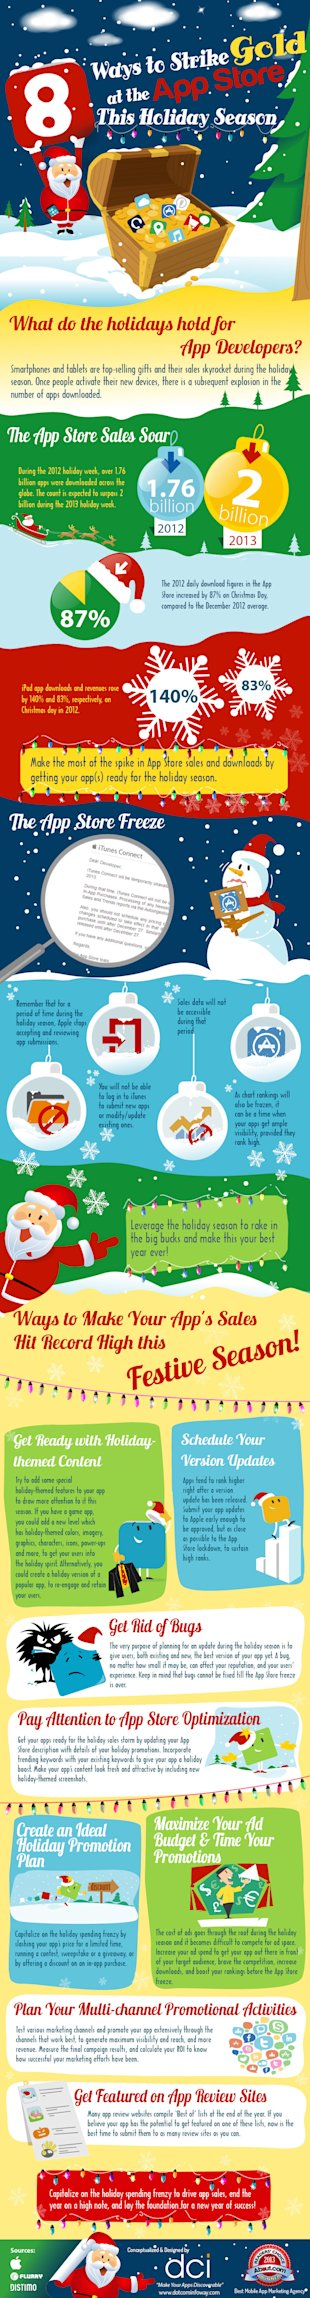 8 Ways to Strike Gold at the App Store This Holiday Season [Infographic] image infographic 8 Ways to Strike Gold at the App Store This Holiday Season2